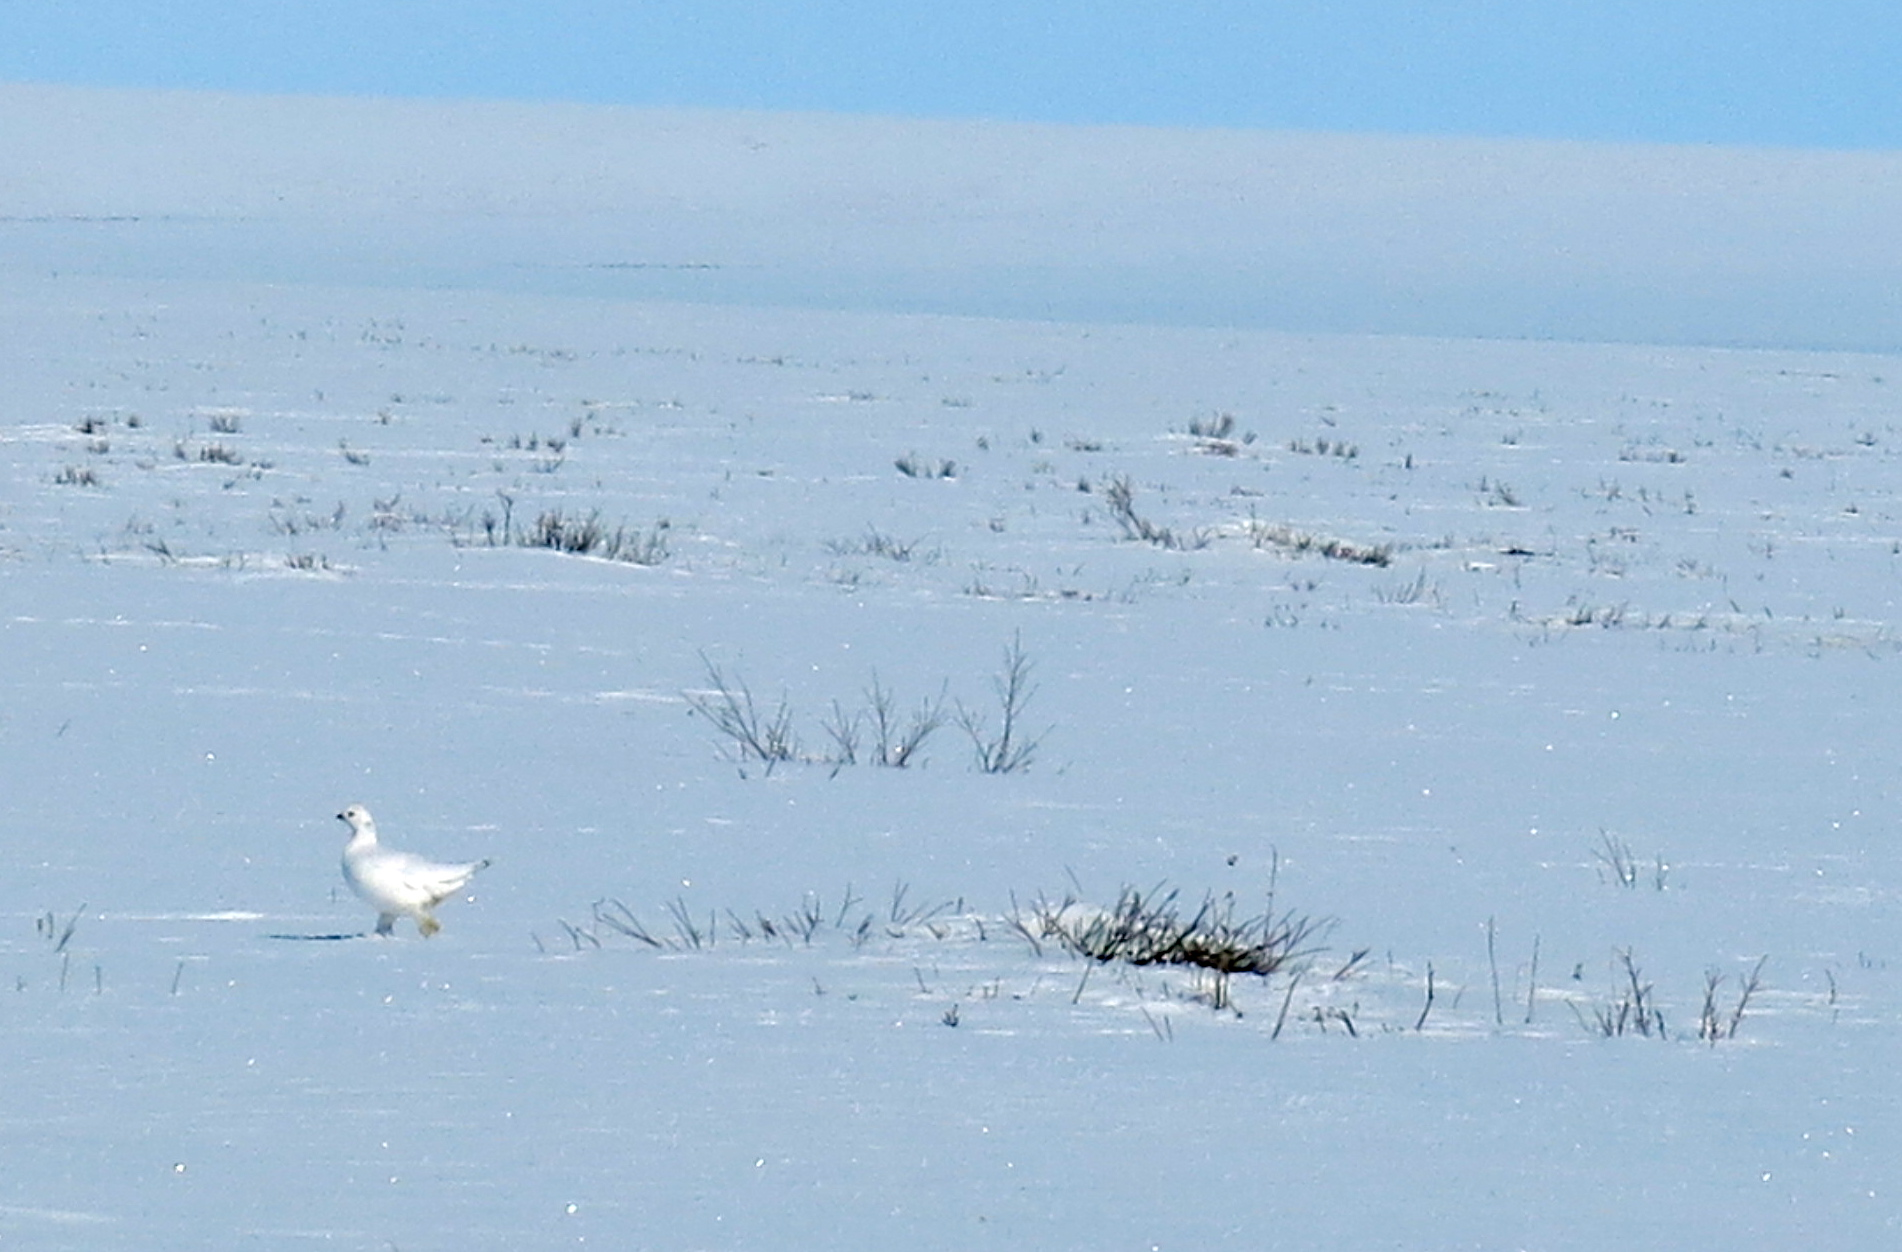 A ptarmigan near the Itkillik River on Alaska's North Slope. (Photo by Ned Rozell)